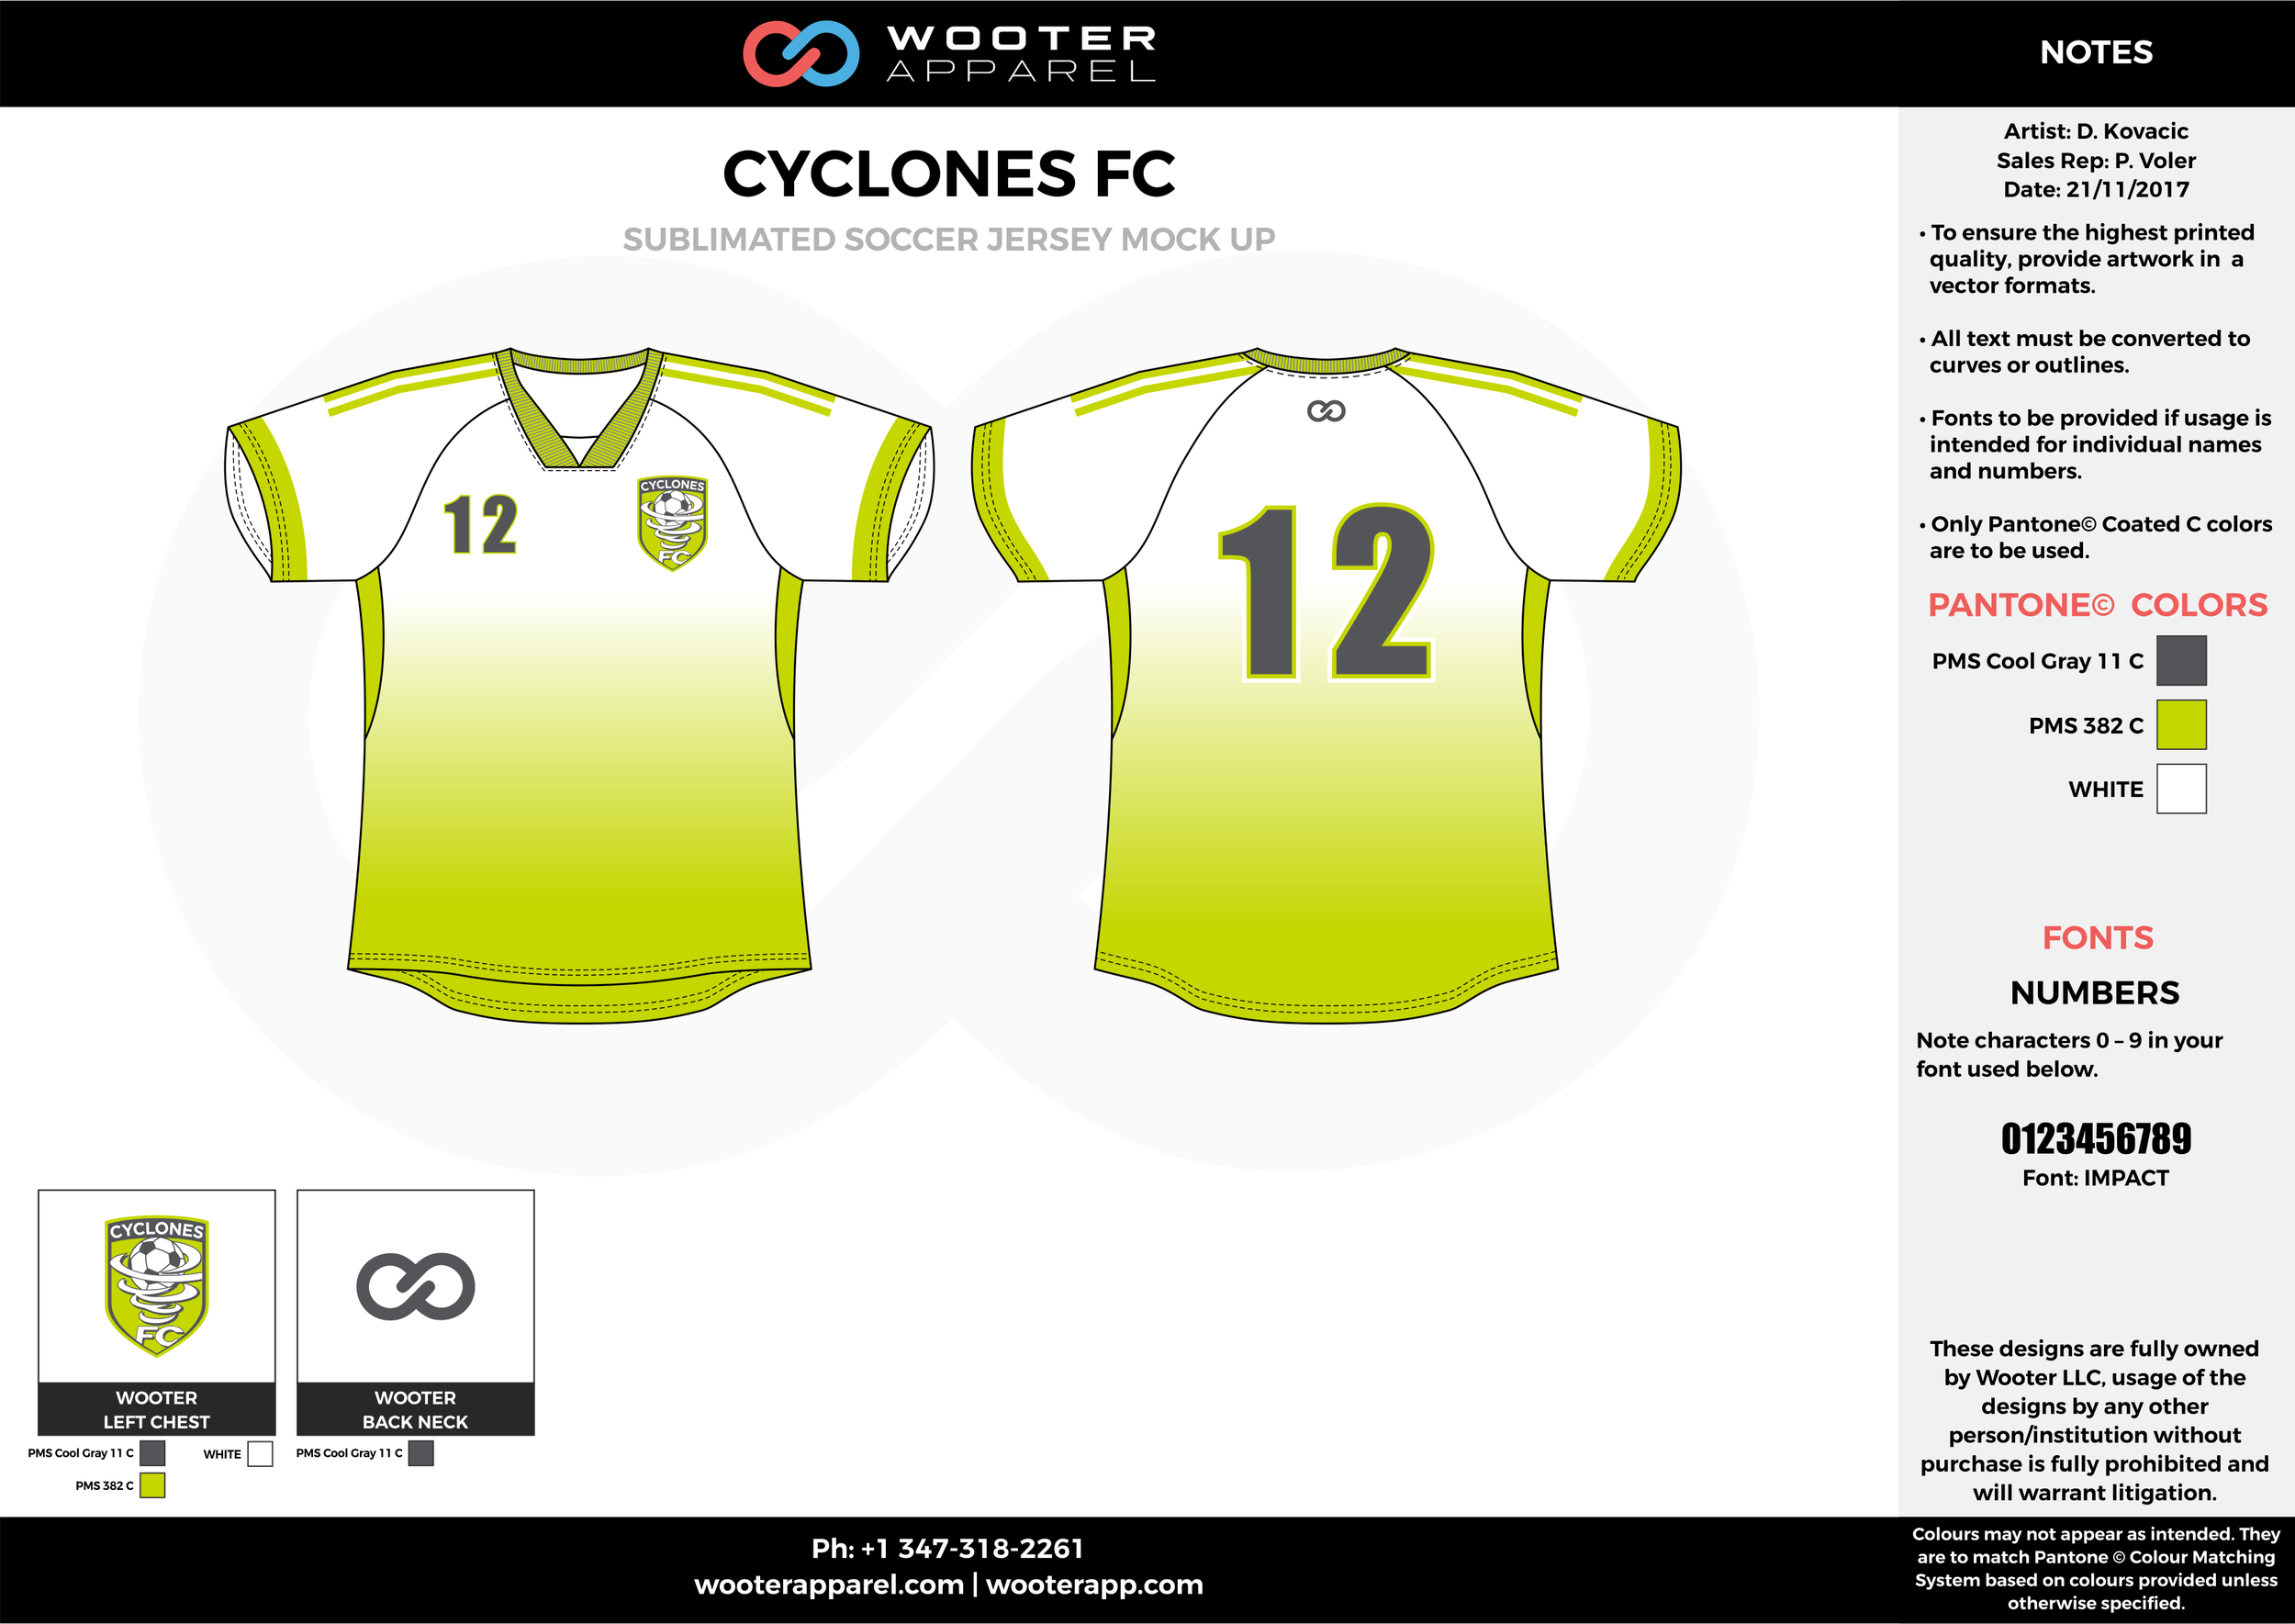 CYCLONES FC white apple green gray custom sublimated soccer uniform jersey shirt